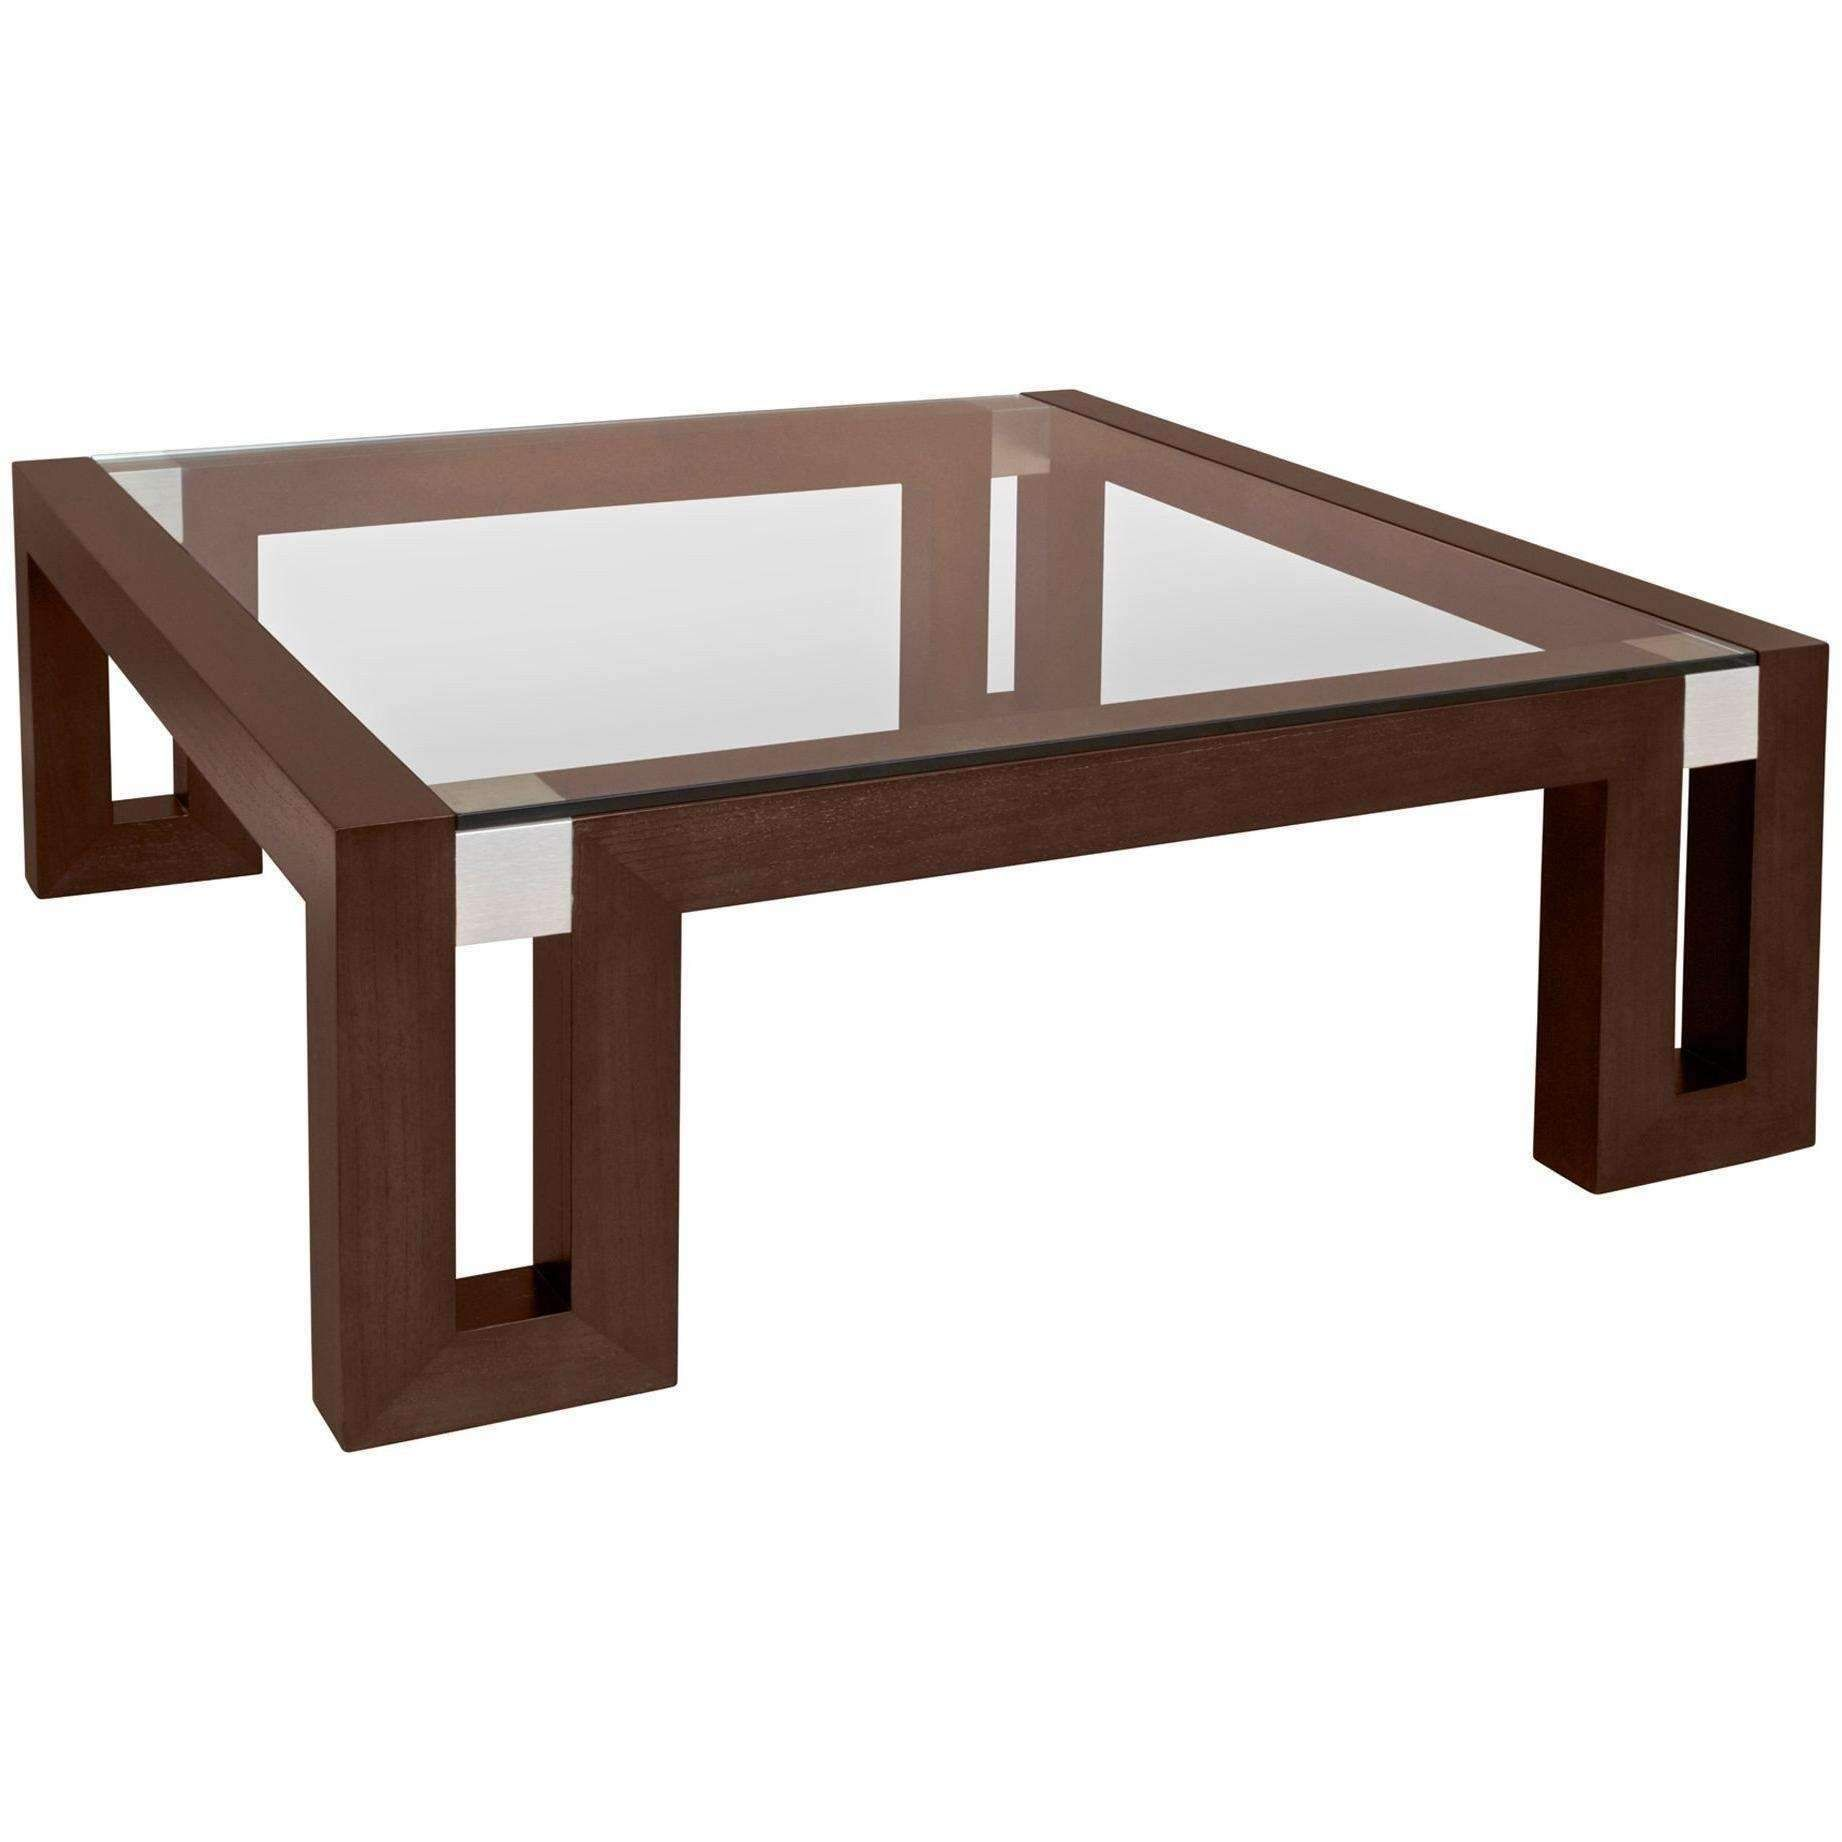 Calligraphy Square Glass Top Cocktail Table in Espresso Finish with